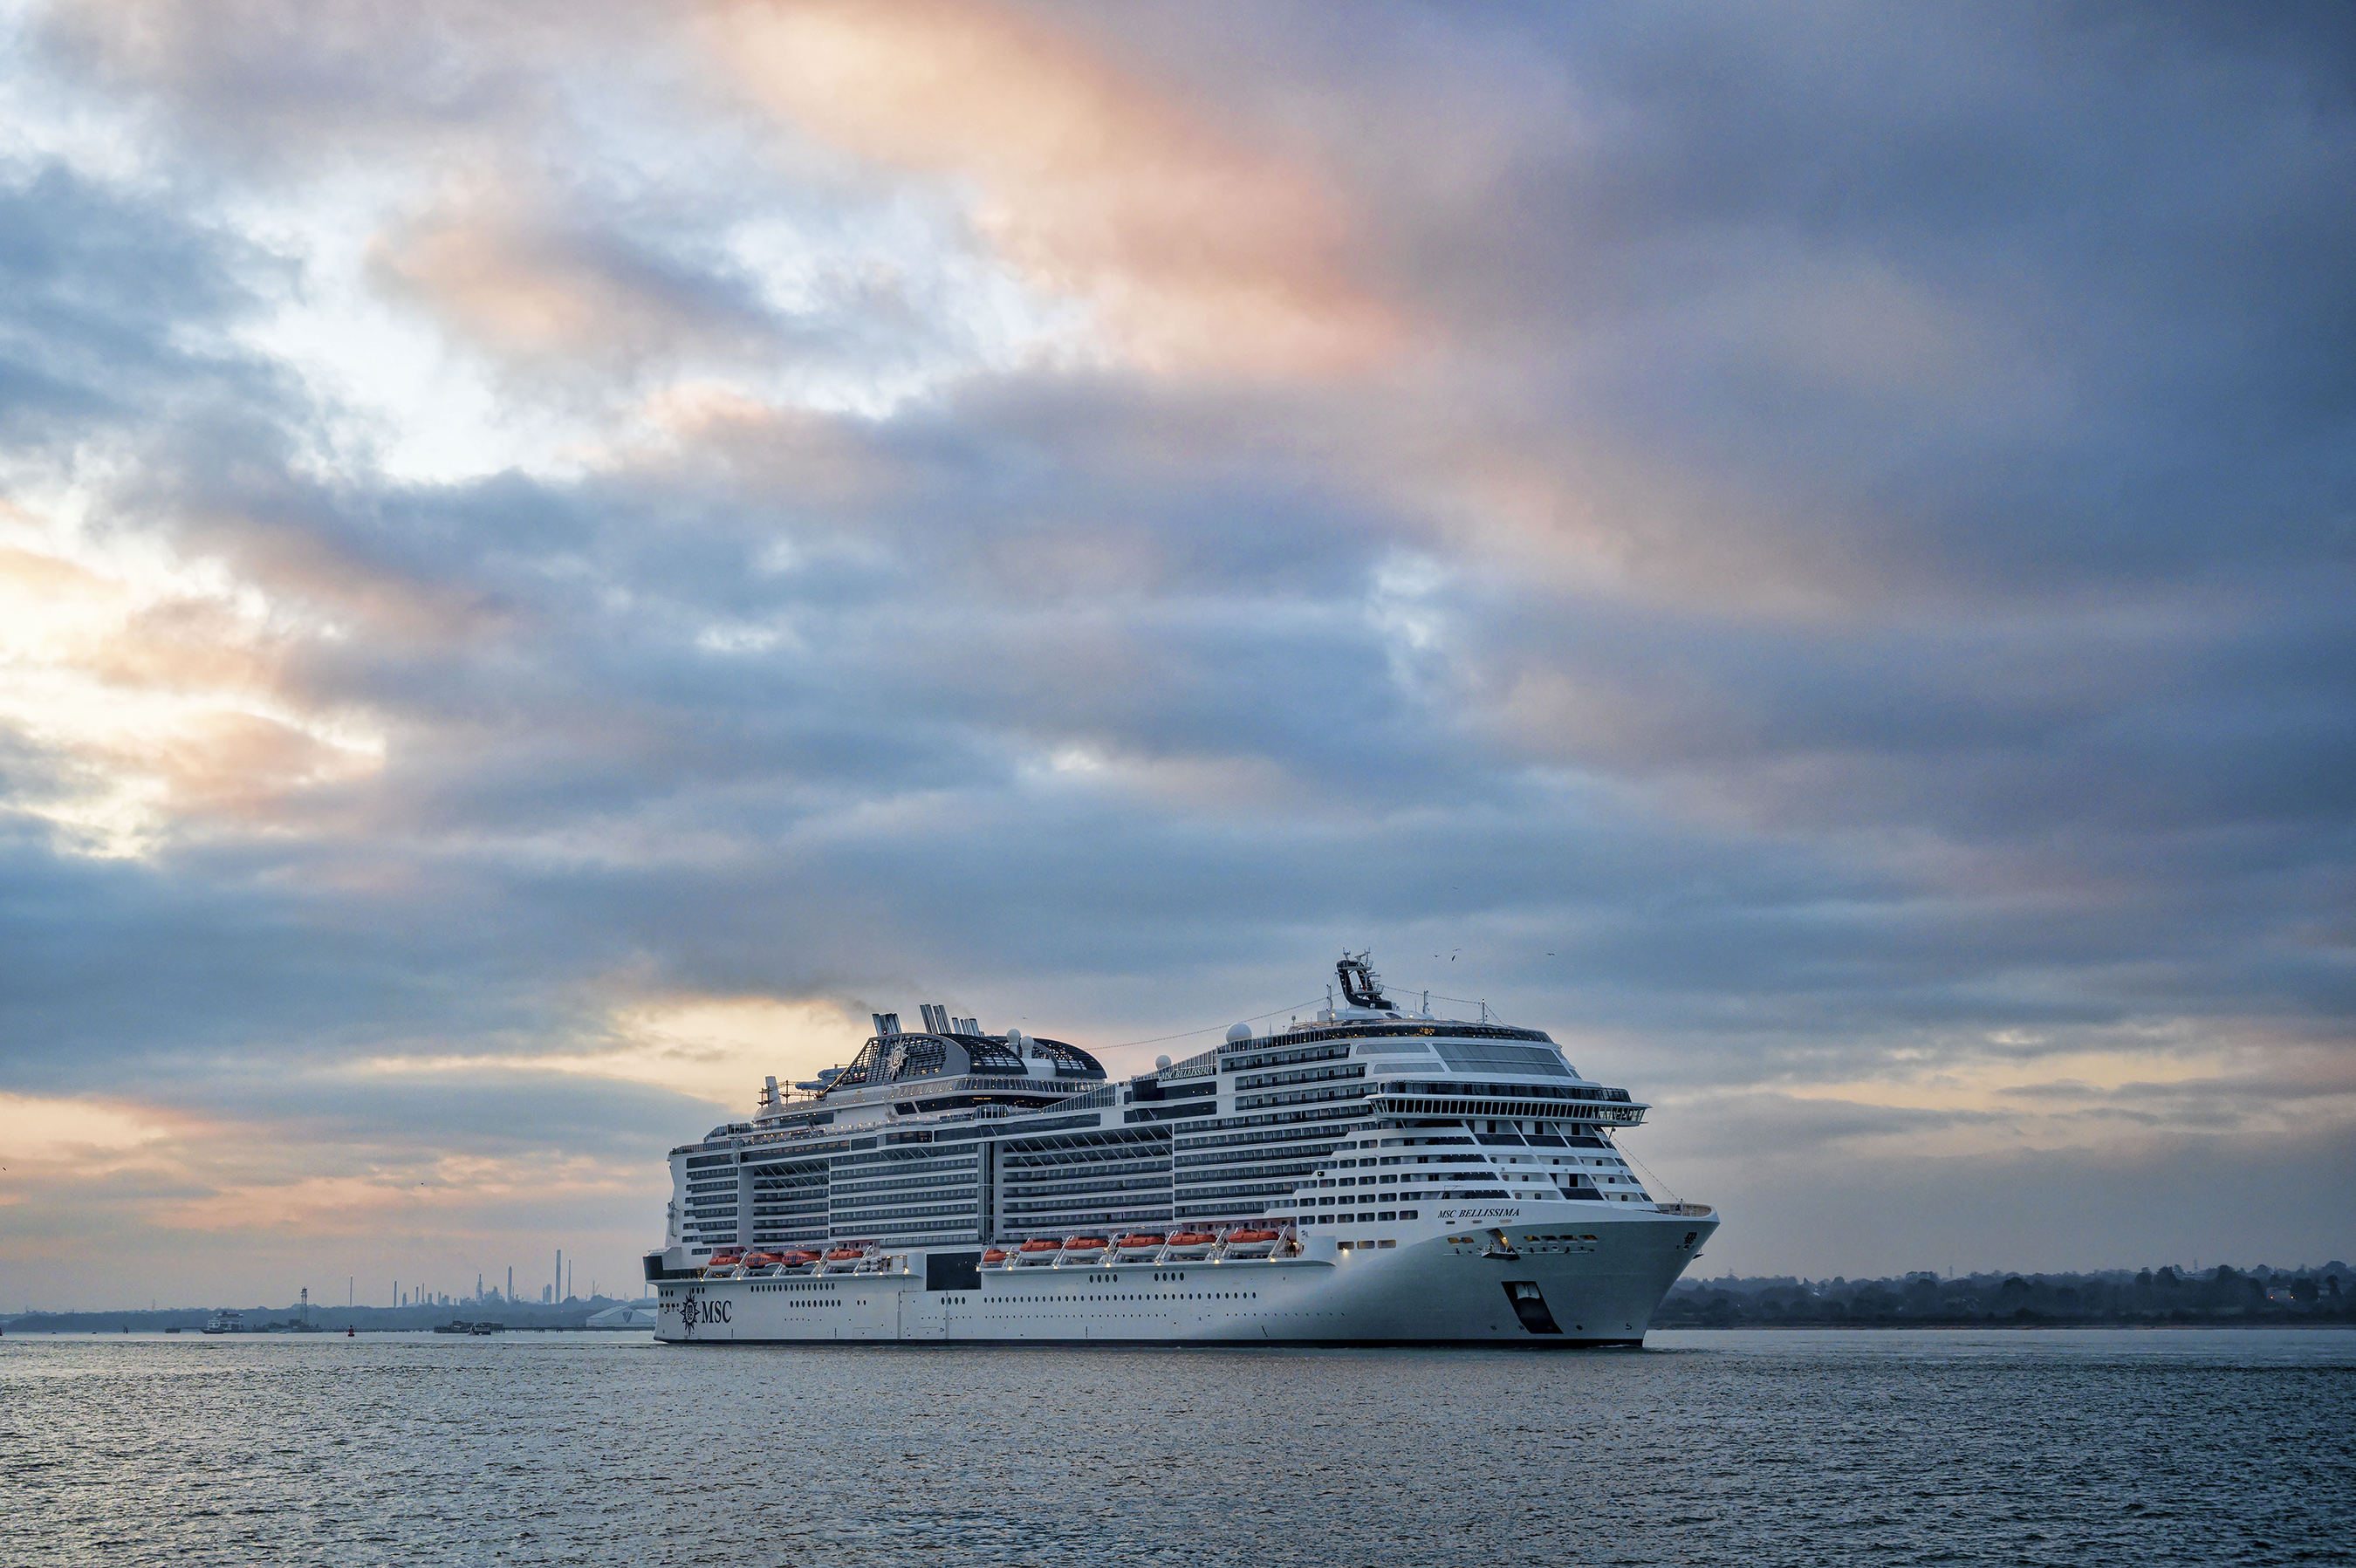 MSC Bellissima officially arrived to the port of Southampton on March 1, 2019.